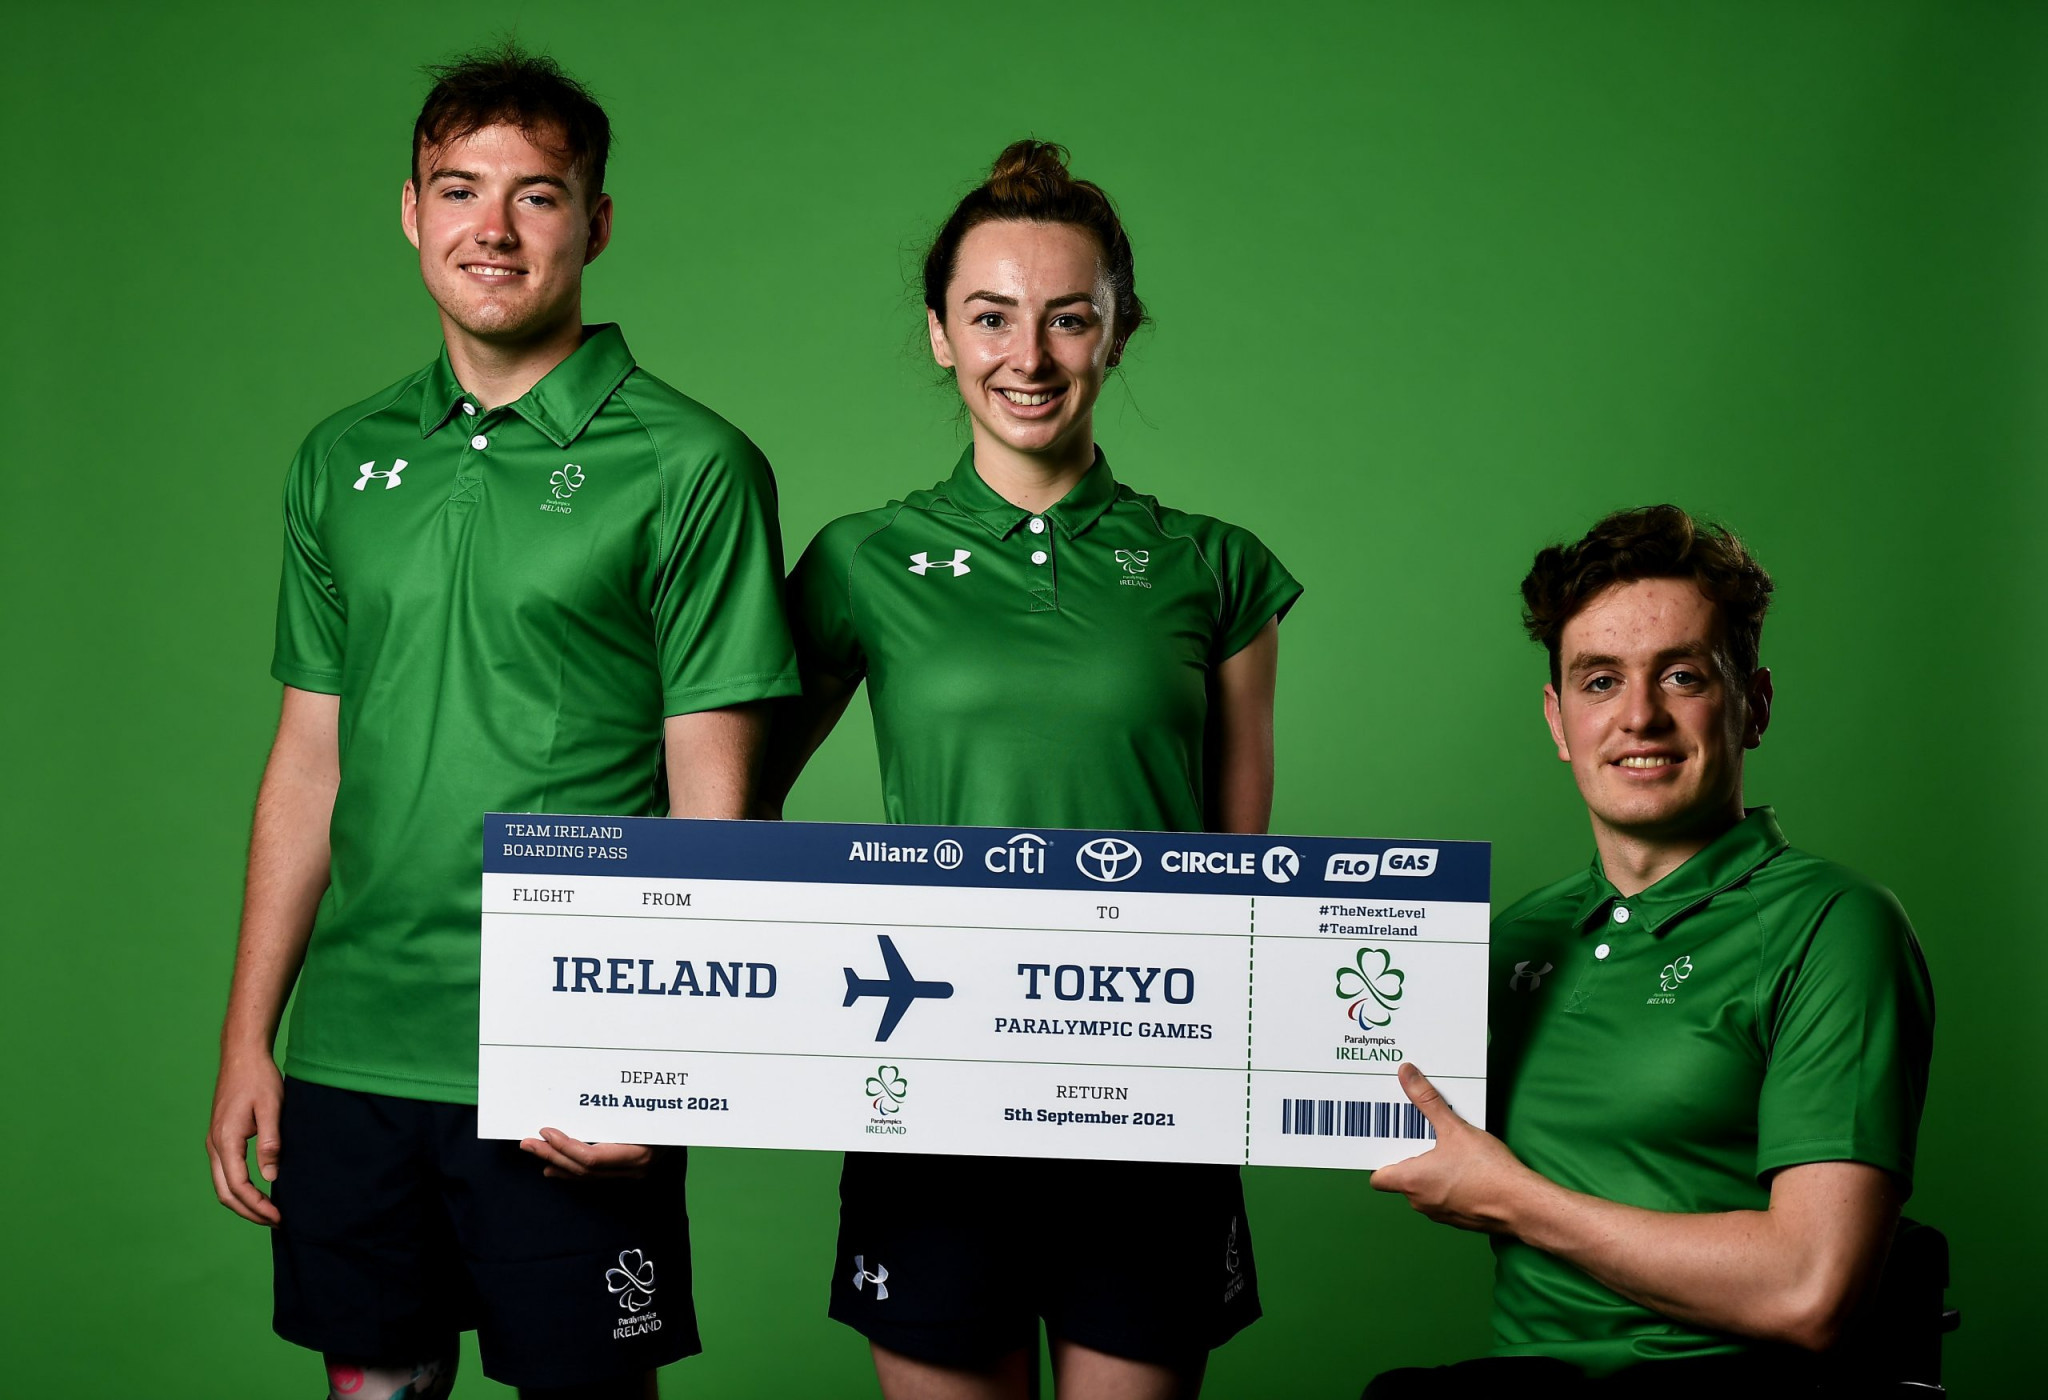 Twenty-one athletes named as part of Team Ireland's Paralympic delegation